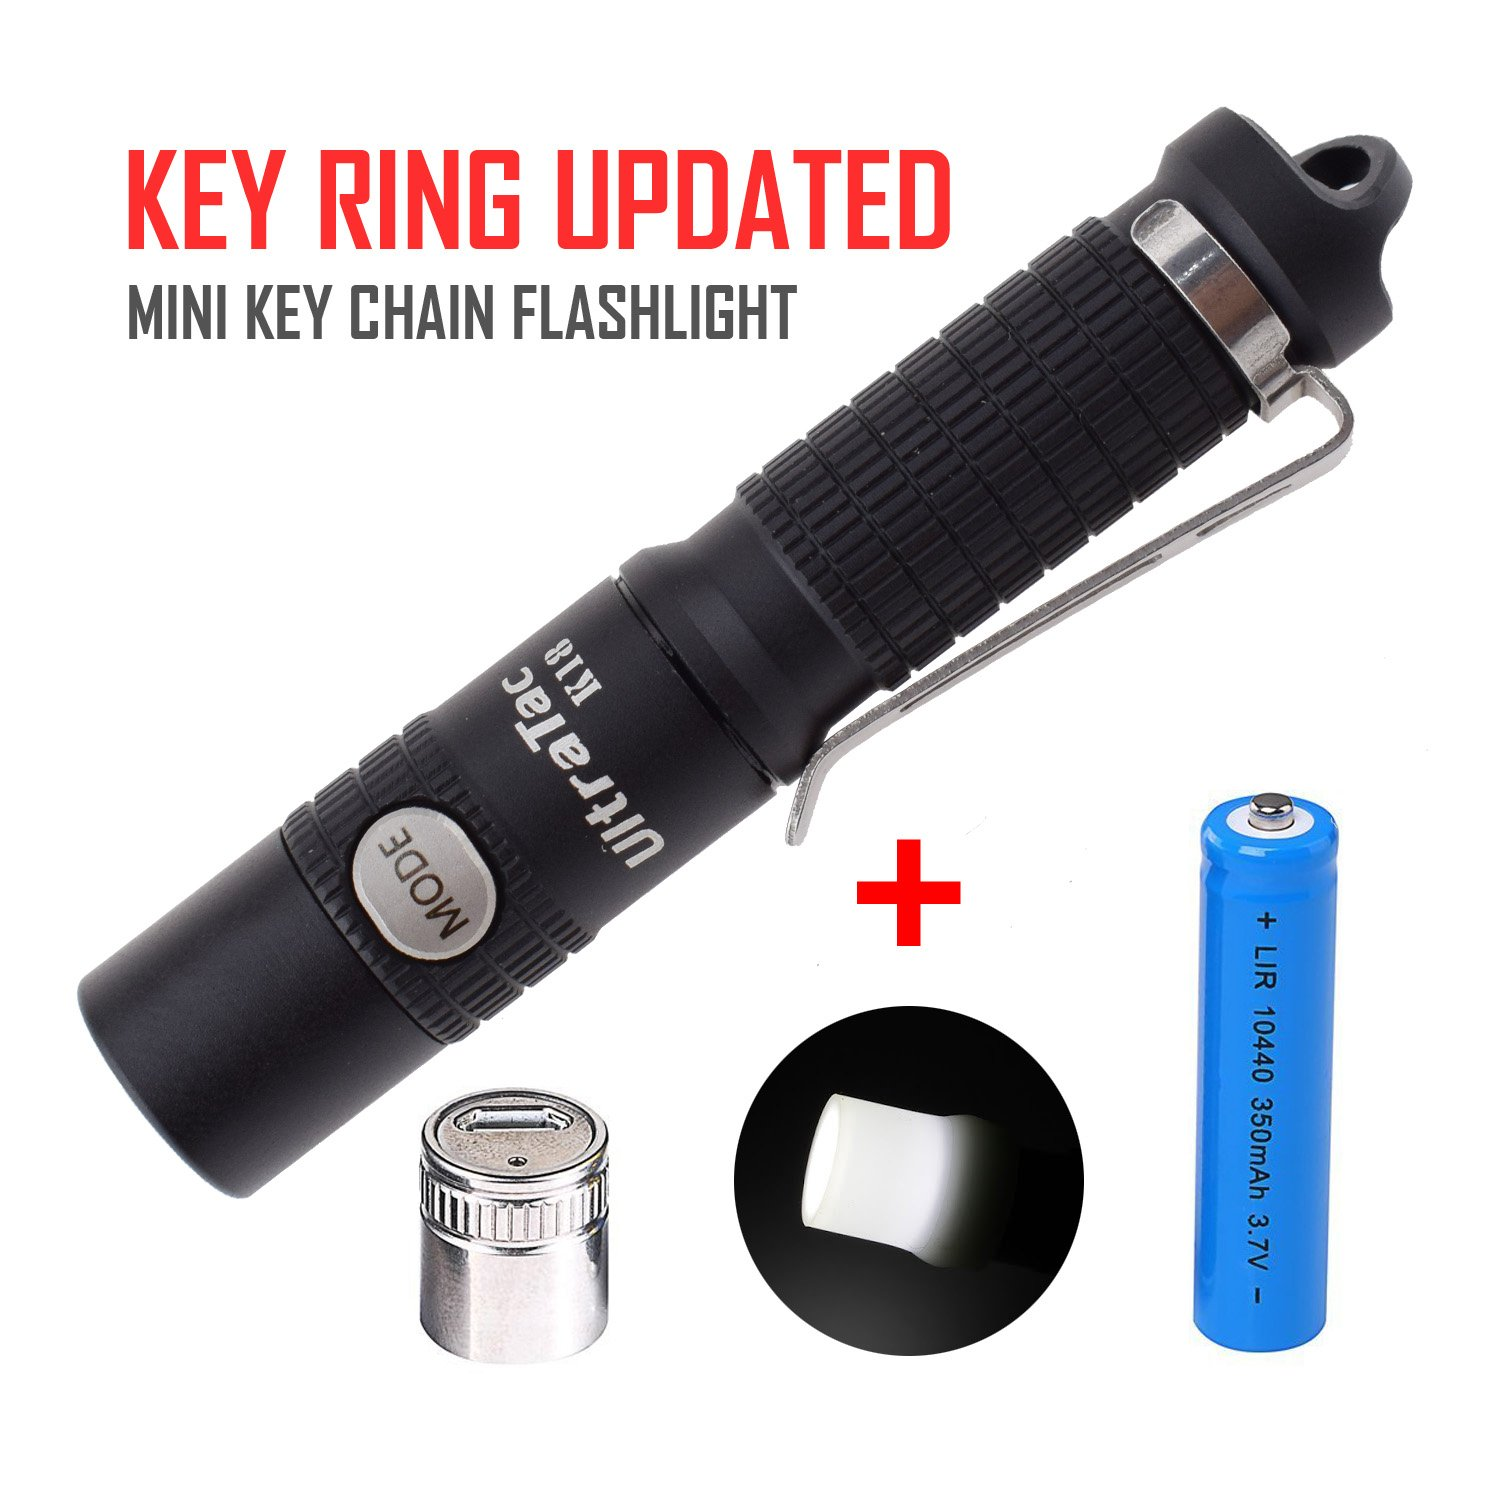 UltraTac K18 2017 AAA Key Chain Flashlight with 10440 Rechargeable Battery and USB Charge Module 370 Lumen Side Button Switch LED Keychain Lights